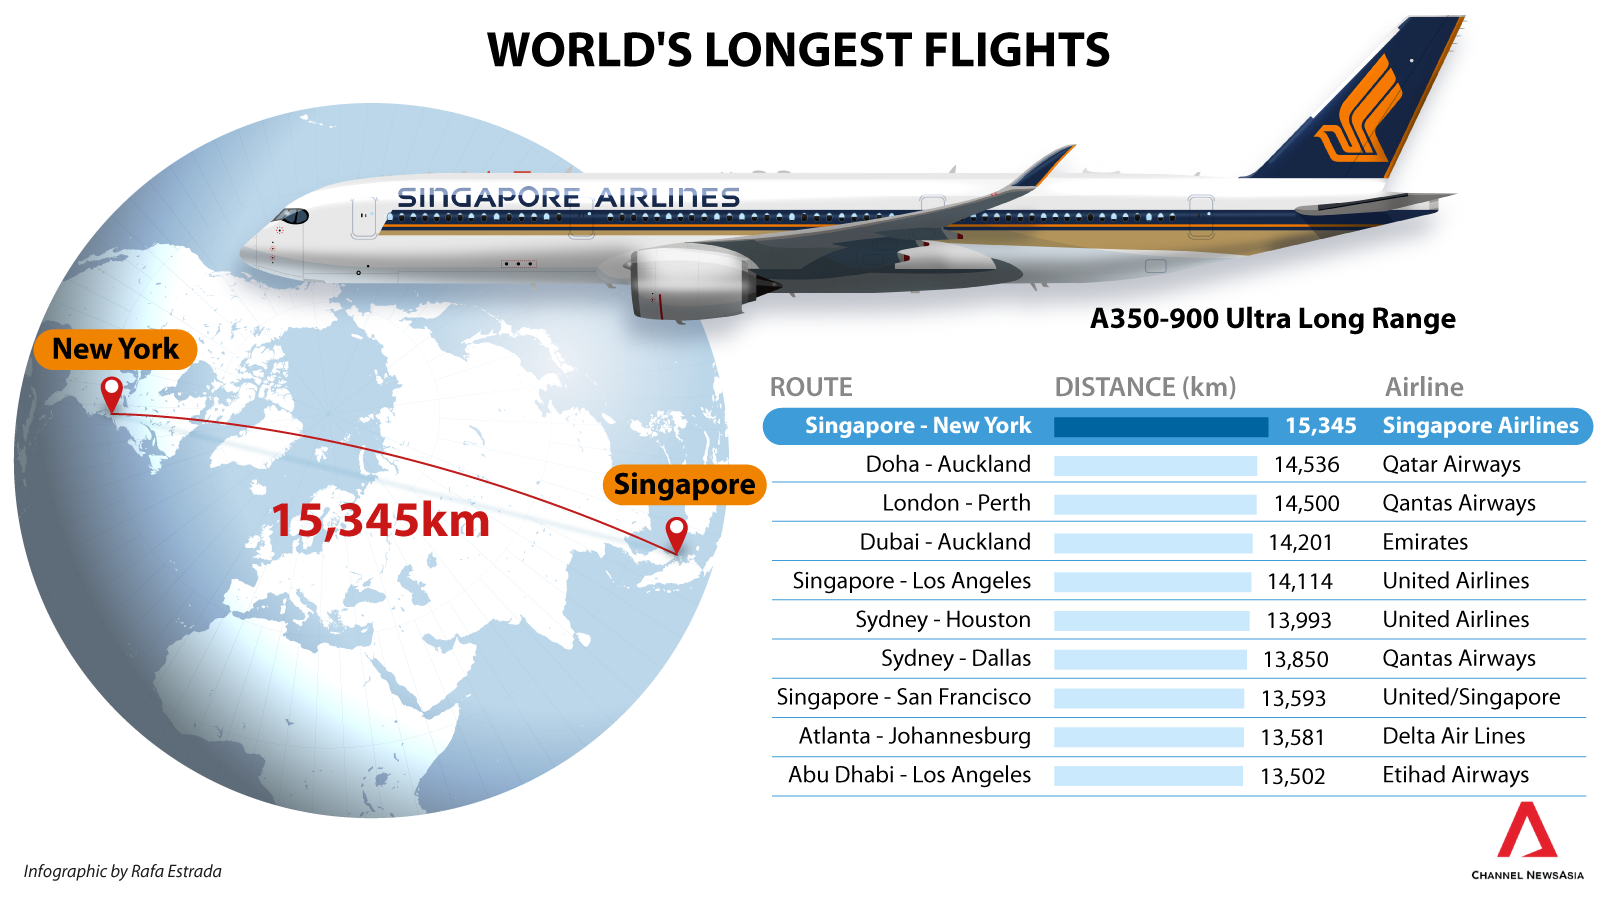 Pin By Stephane Rochek On Channel Newsasia Graphics Singapore Airlines United Airlines Dubai